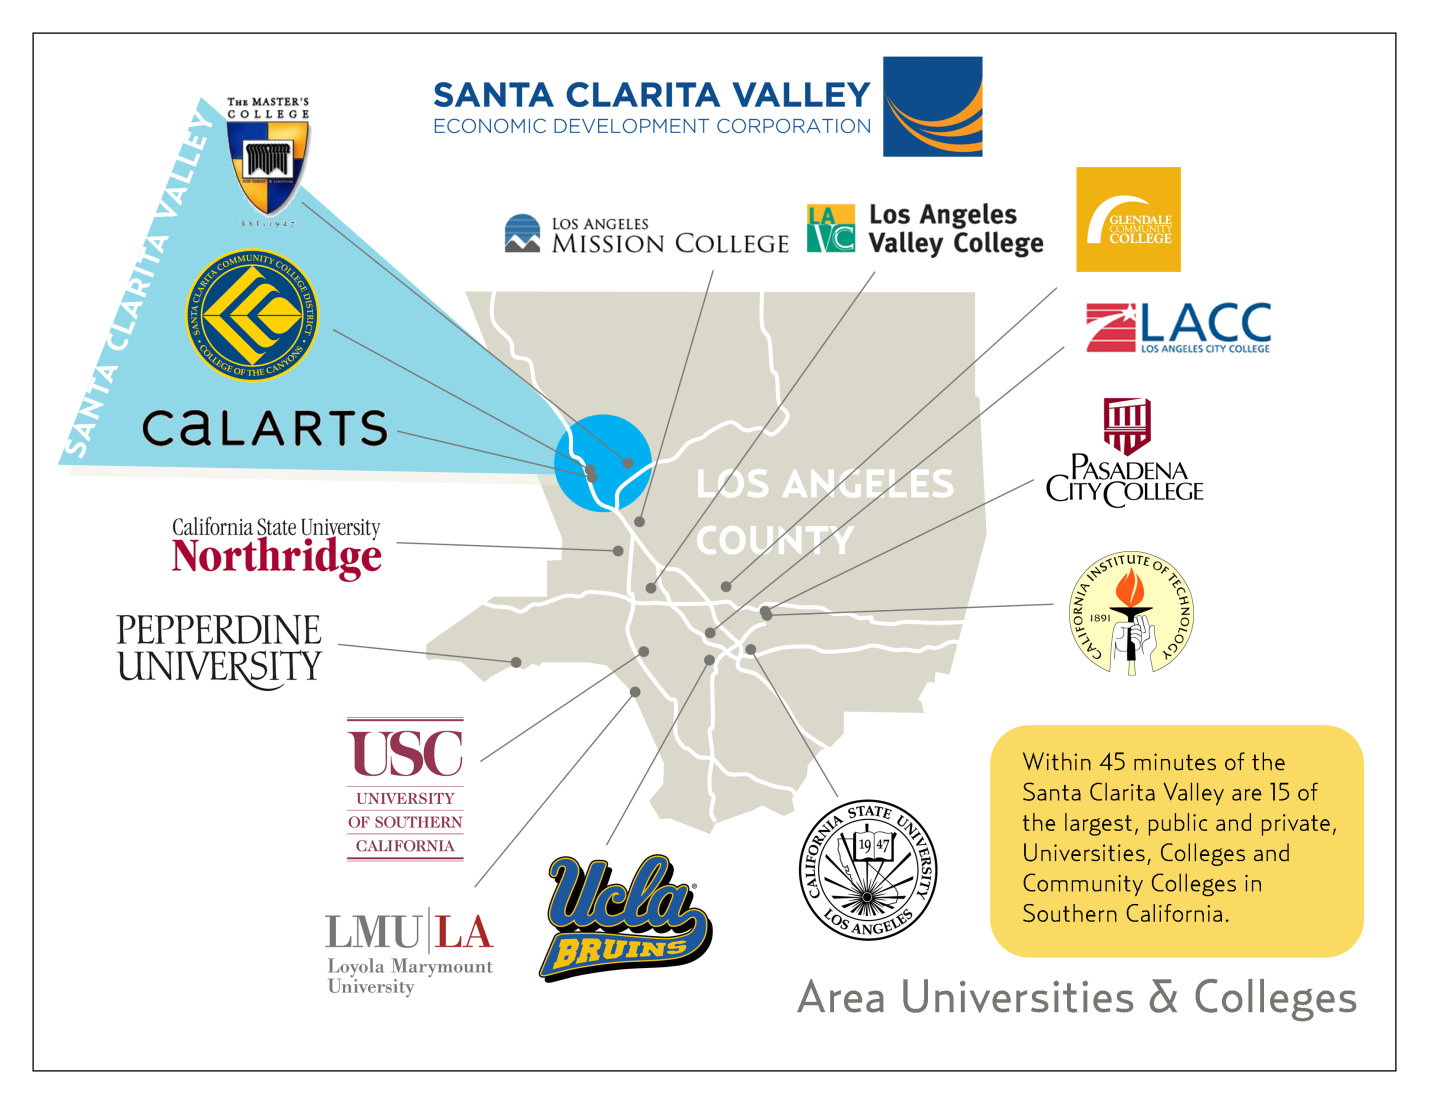 Education in Santa Clarita Valley